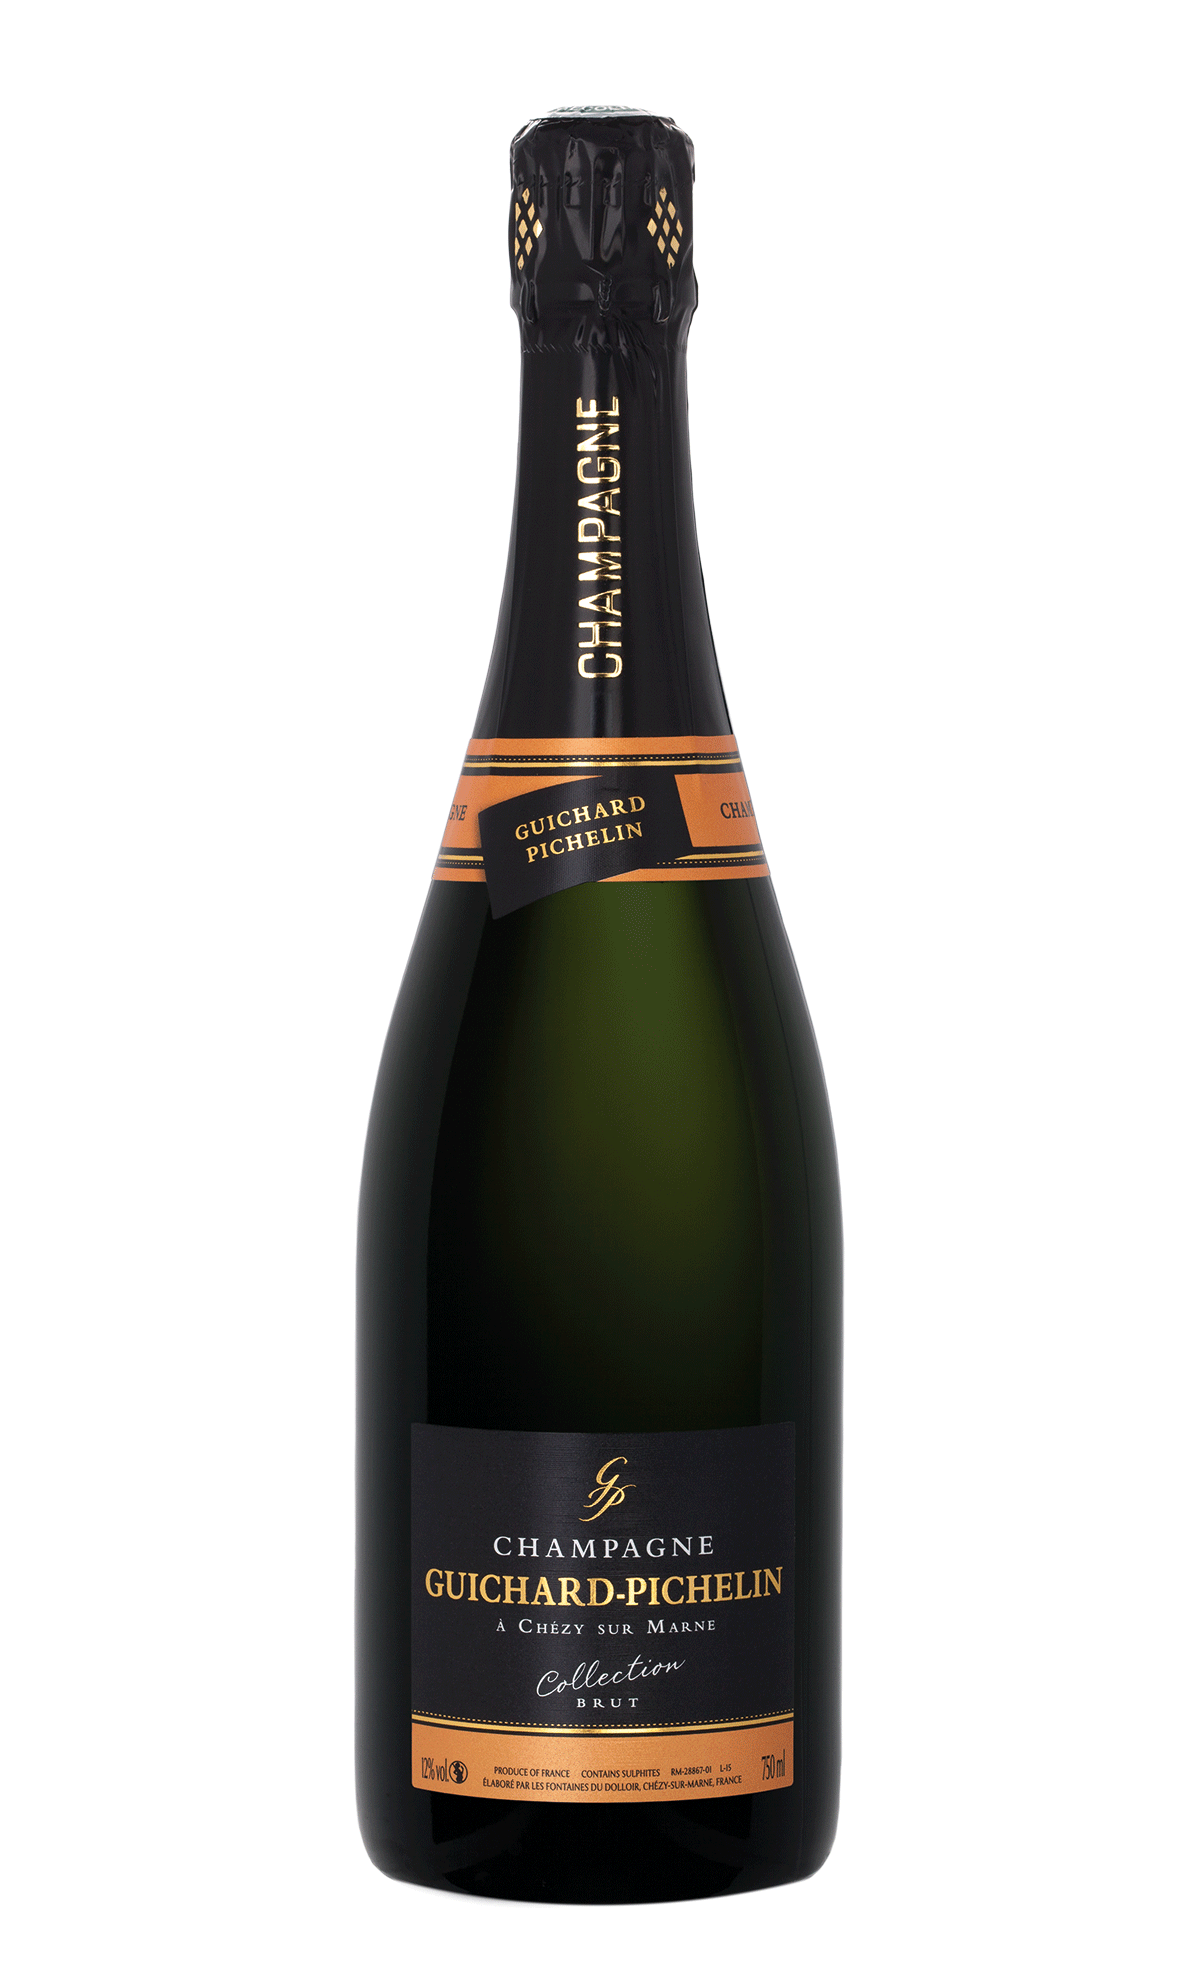 Champagne Brut Collection, Champagne Guichard Pichelin